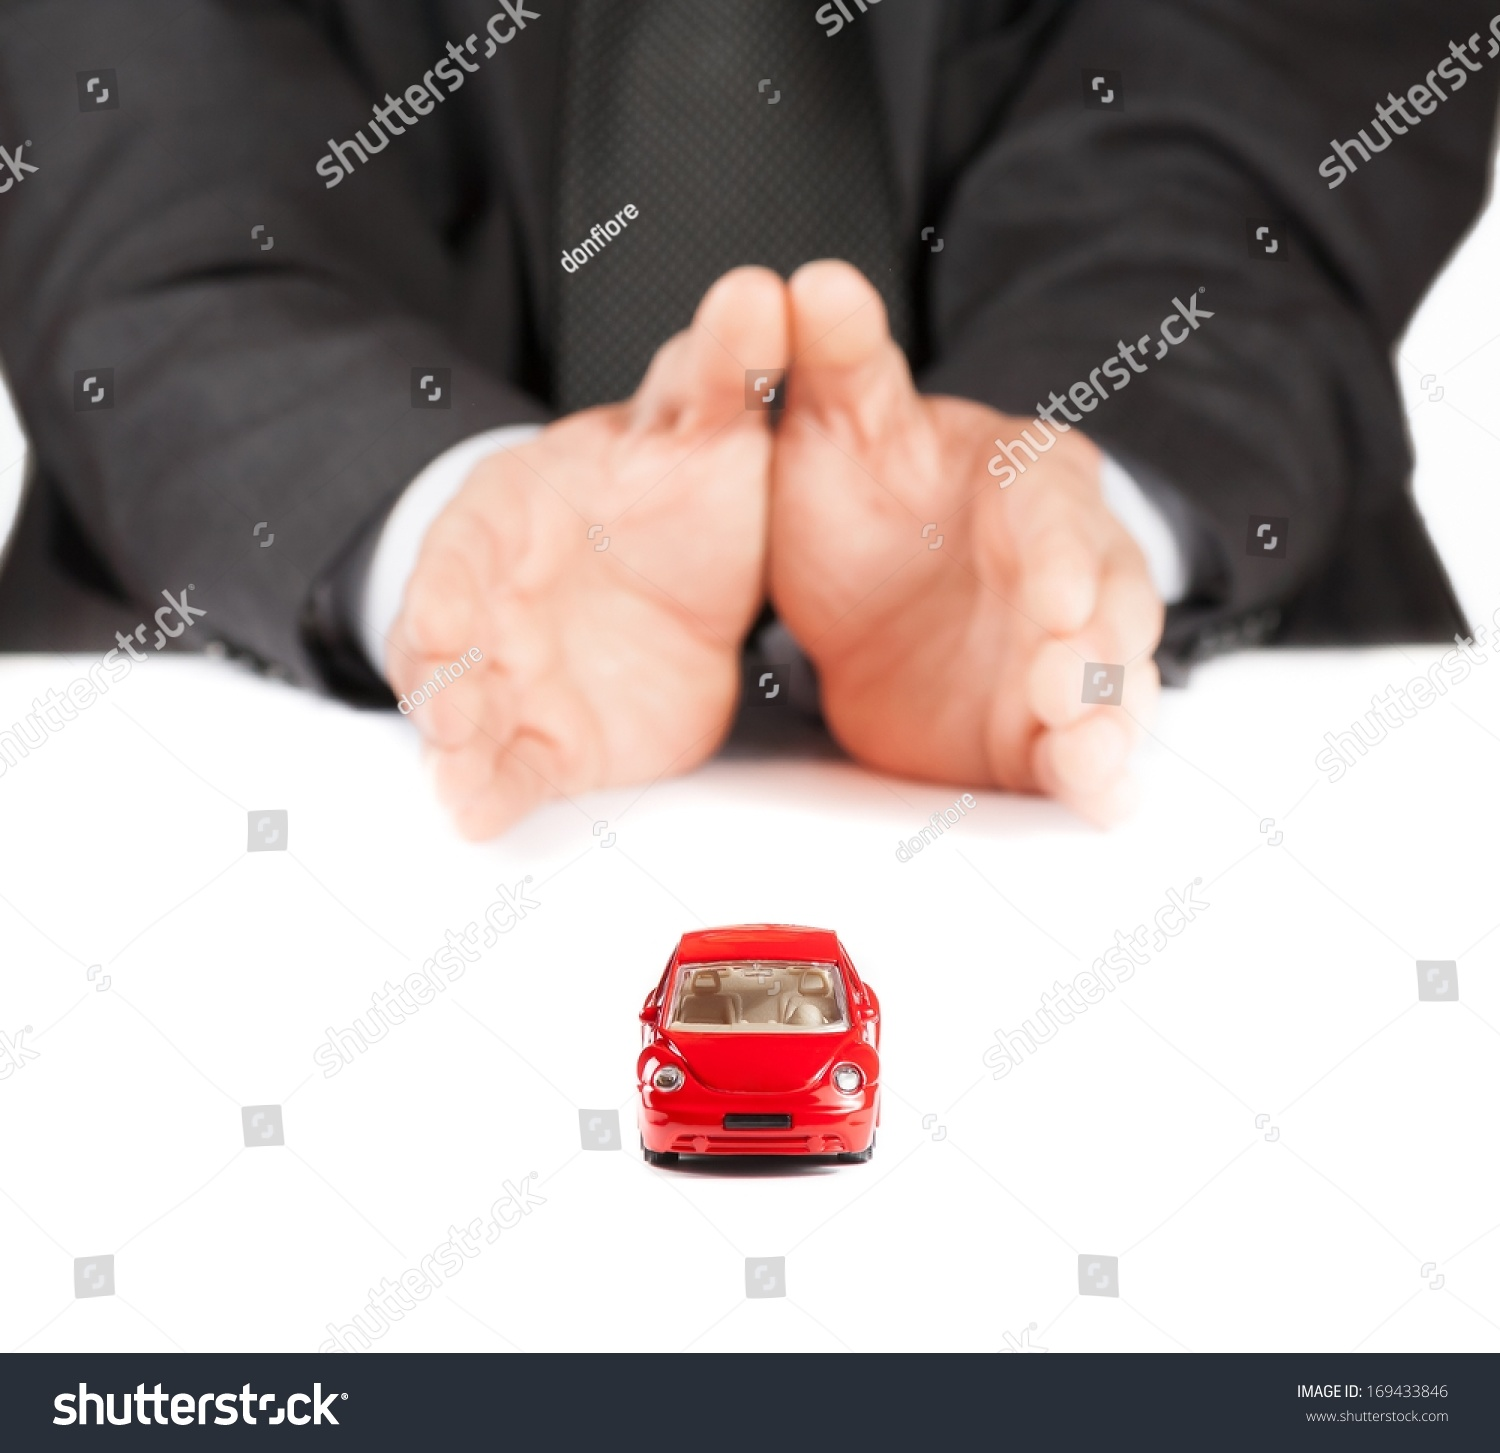 Red Toy Car Front Businessman On Stock Photo 169433846  Shutterstock